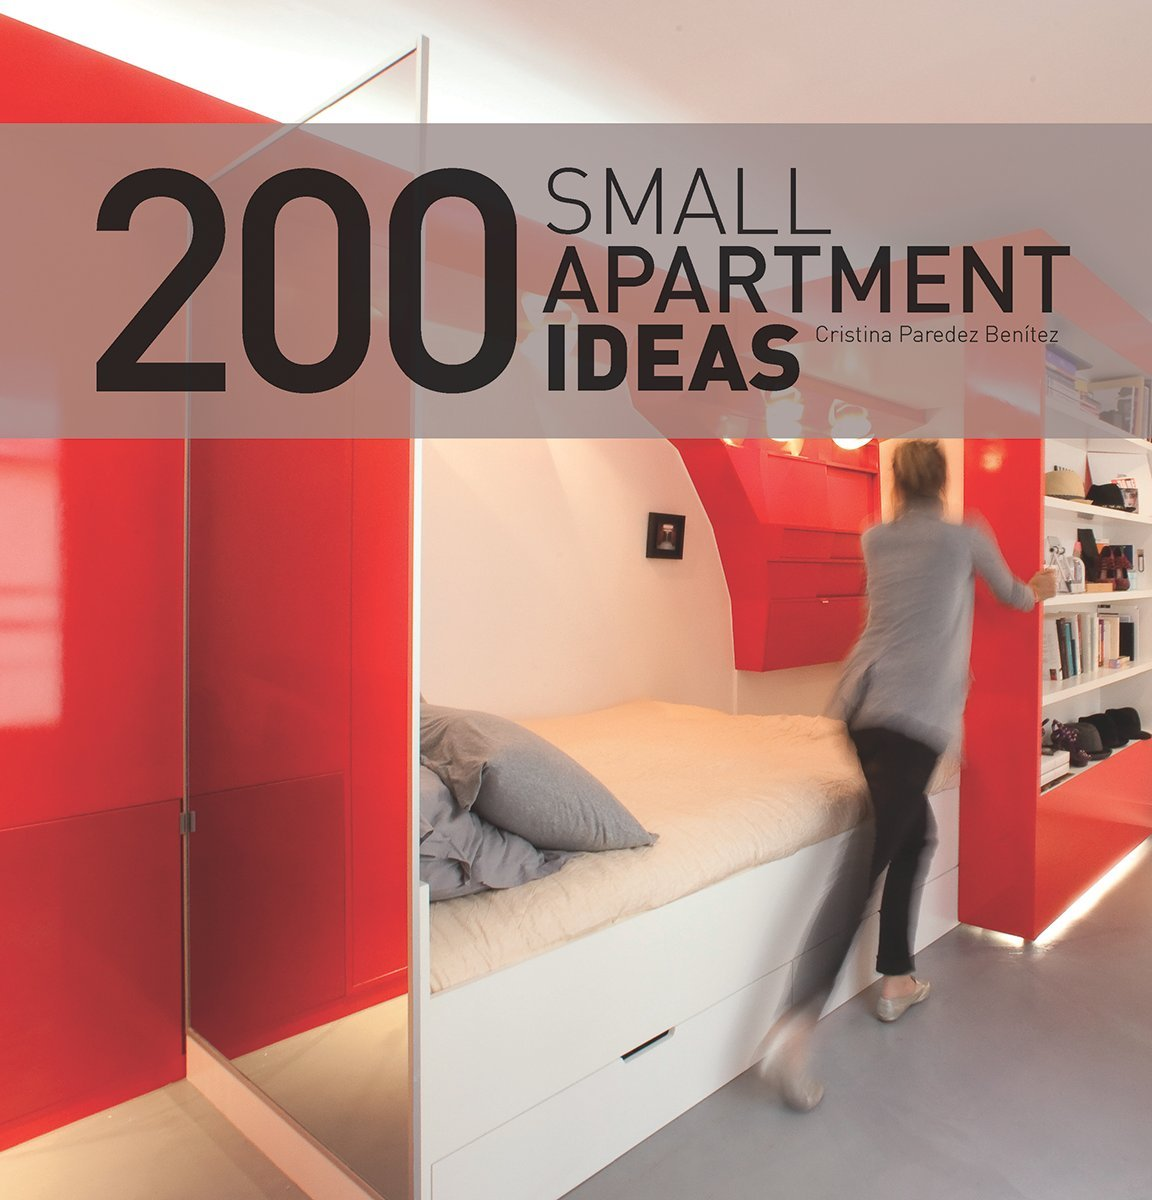 200 Small Apartment Ideas: Cristina Benitez: 9781770850453: Amazon ...